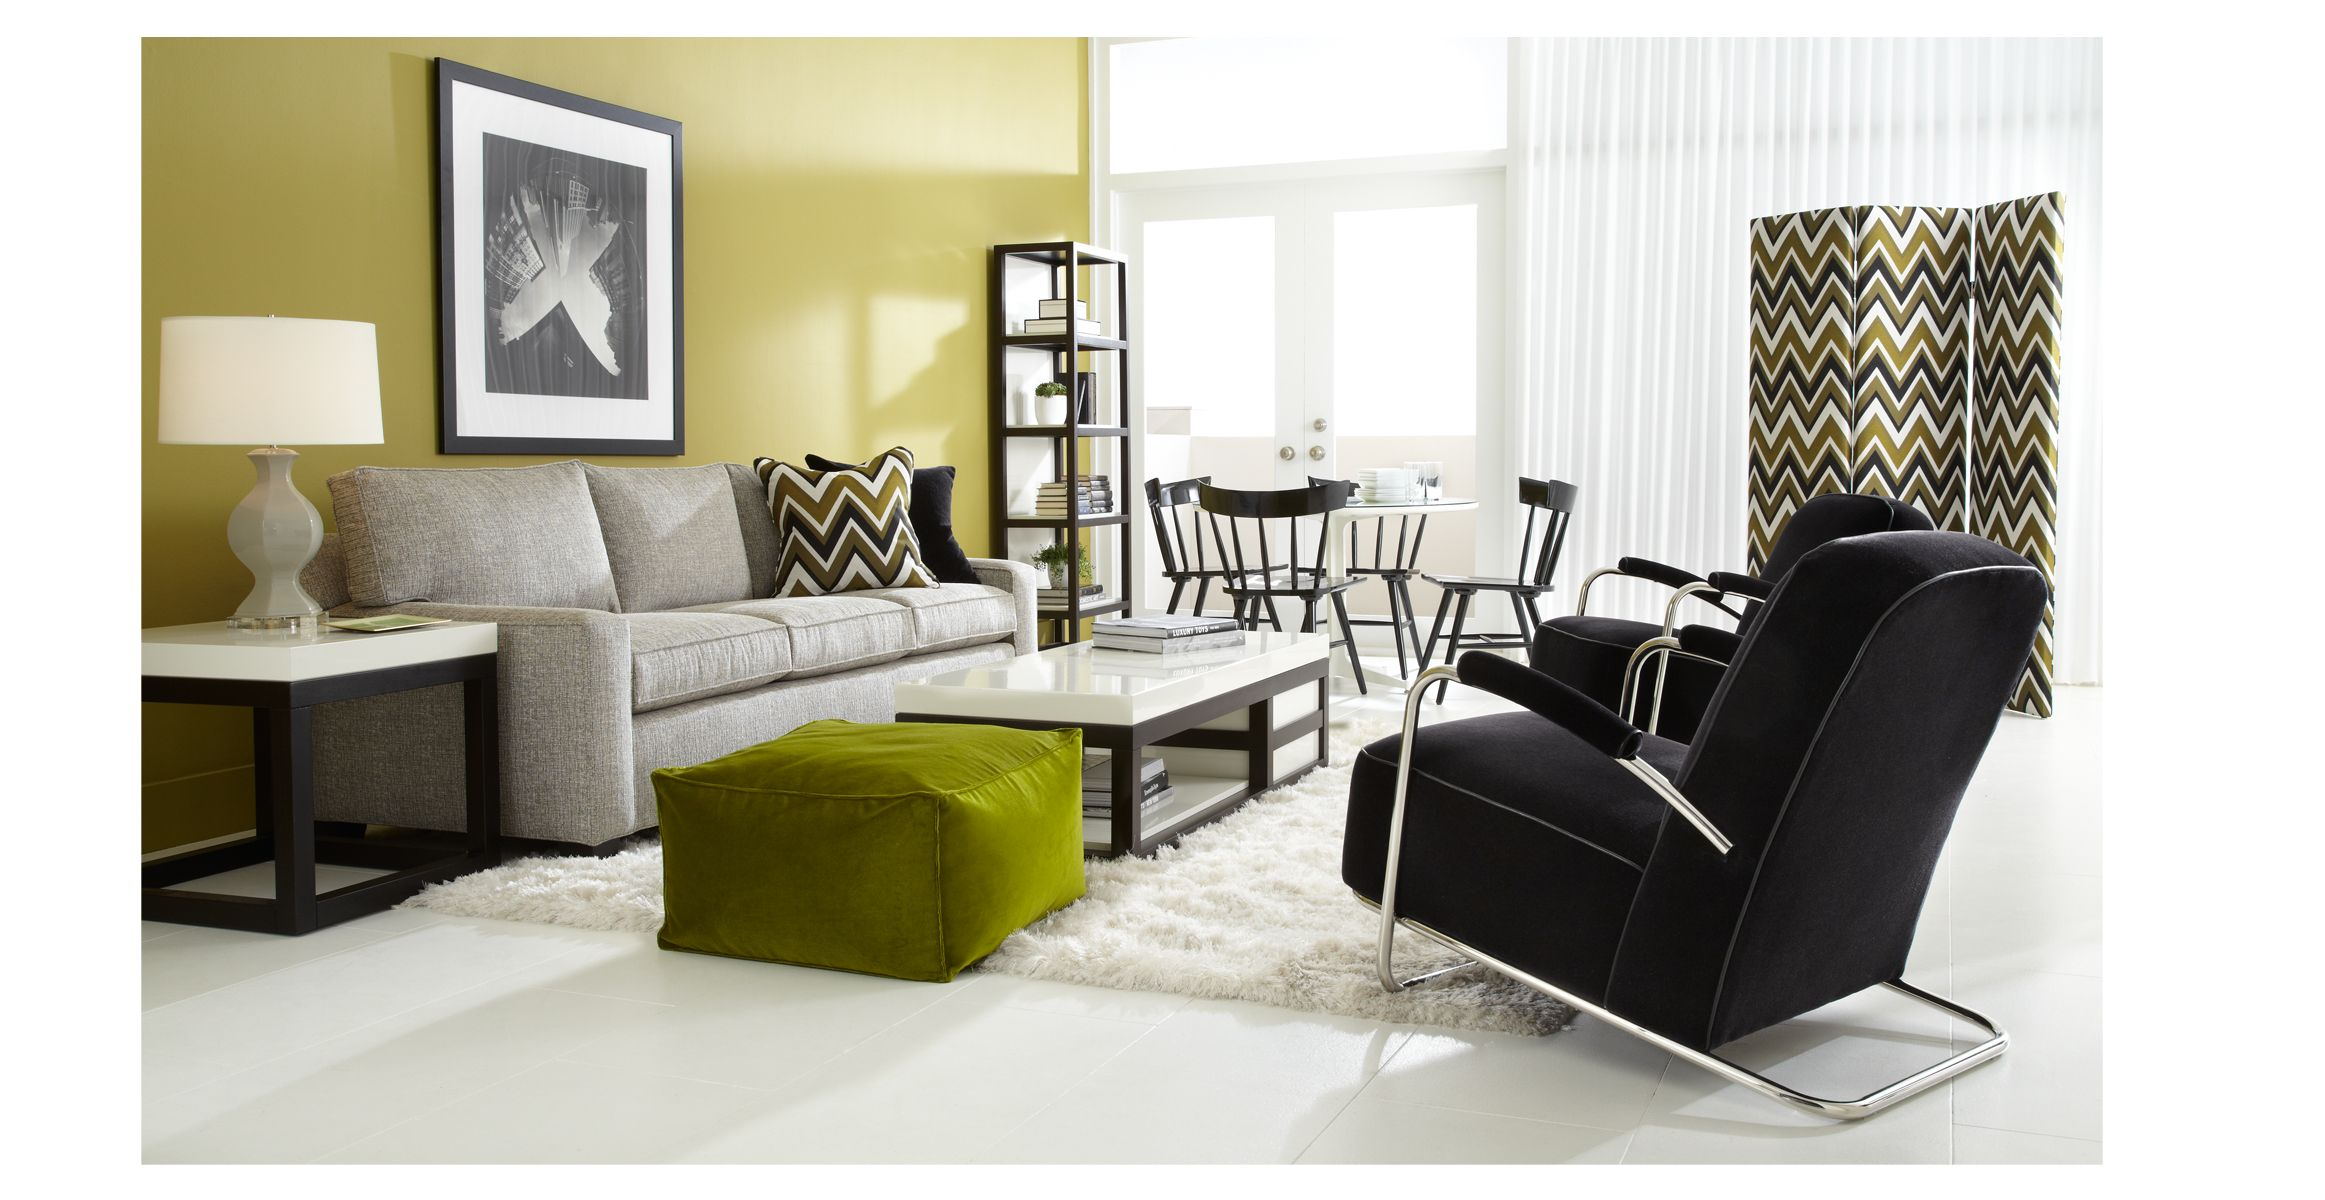 Mitchell gold sofa reviews - Furniture Manufactured By Mitchell Gold Bob Williams Available At Mitchell Gold Bob Williams Factory Outlet Located Inside Hickory Furniture Mart